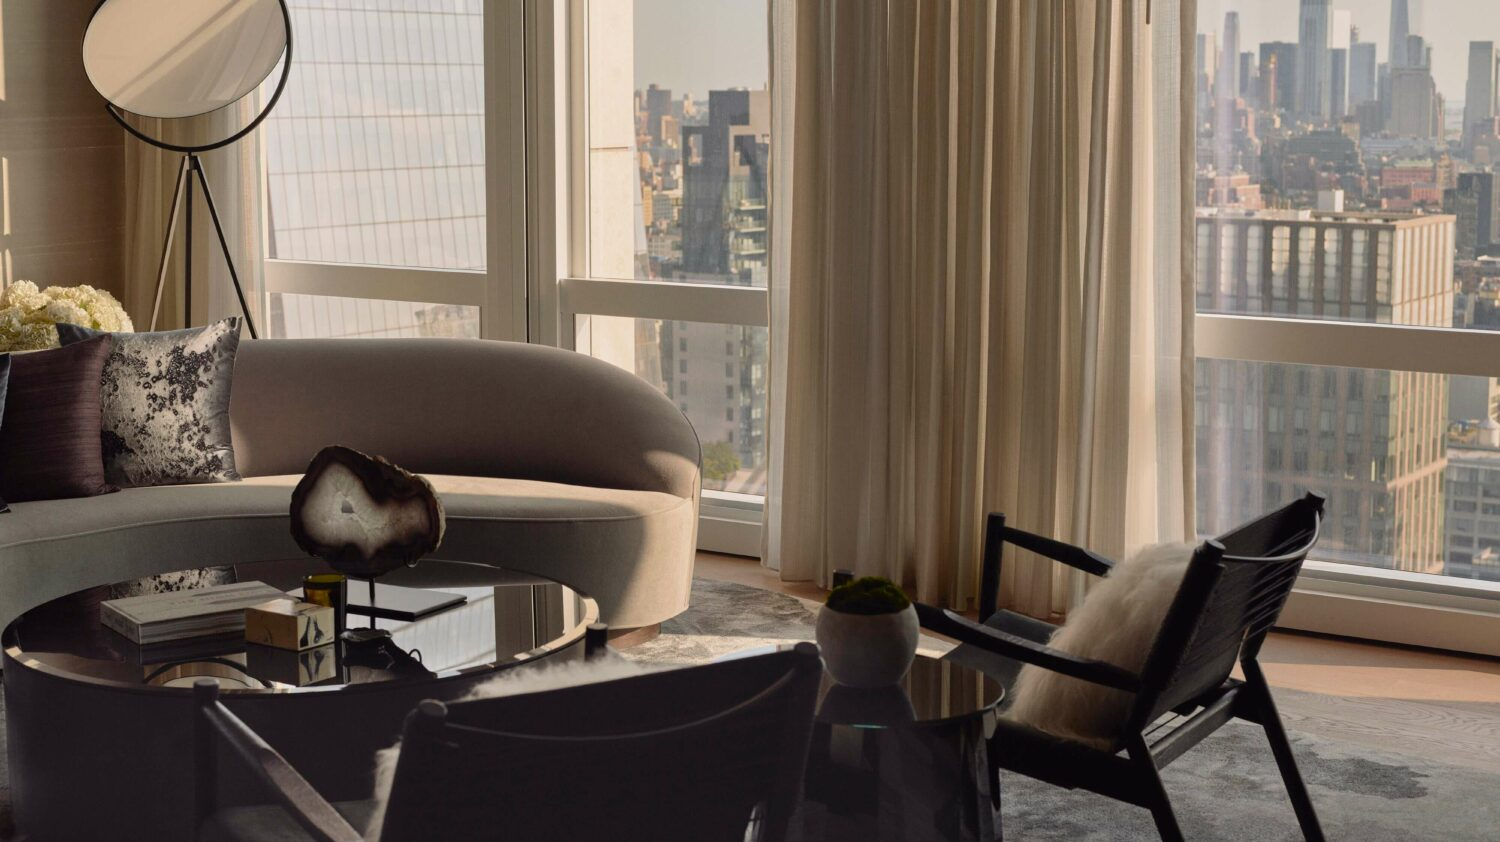 livingroom view-equinox hotel new york city